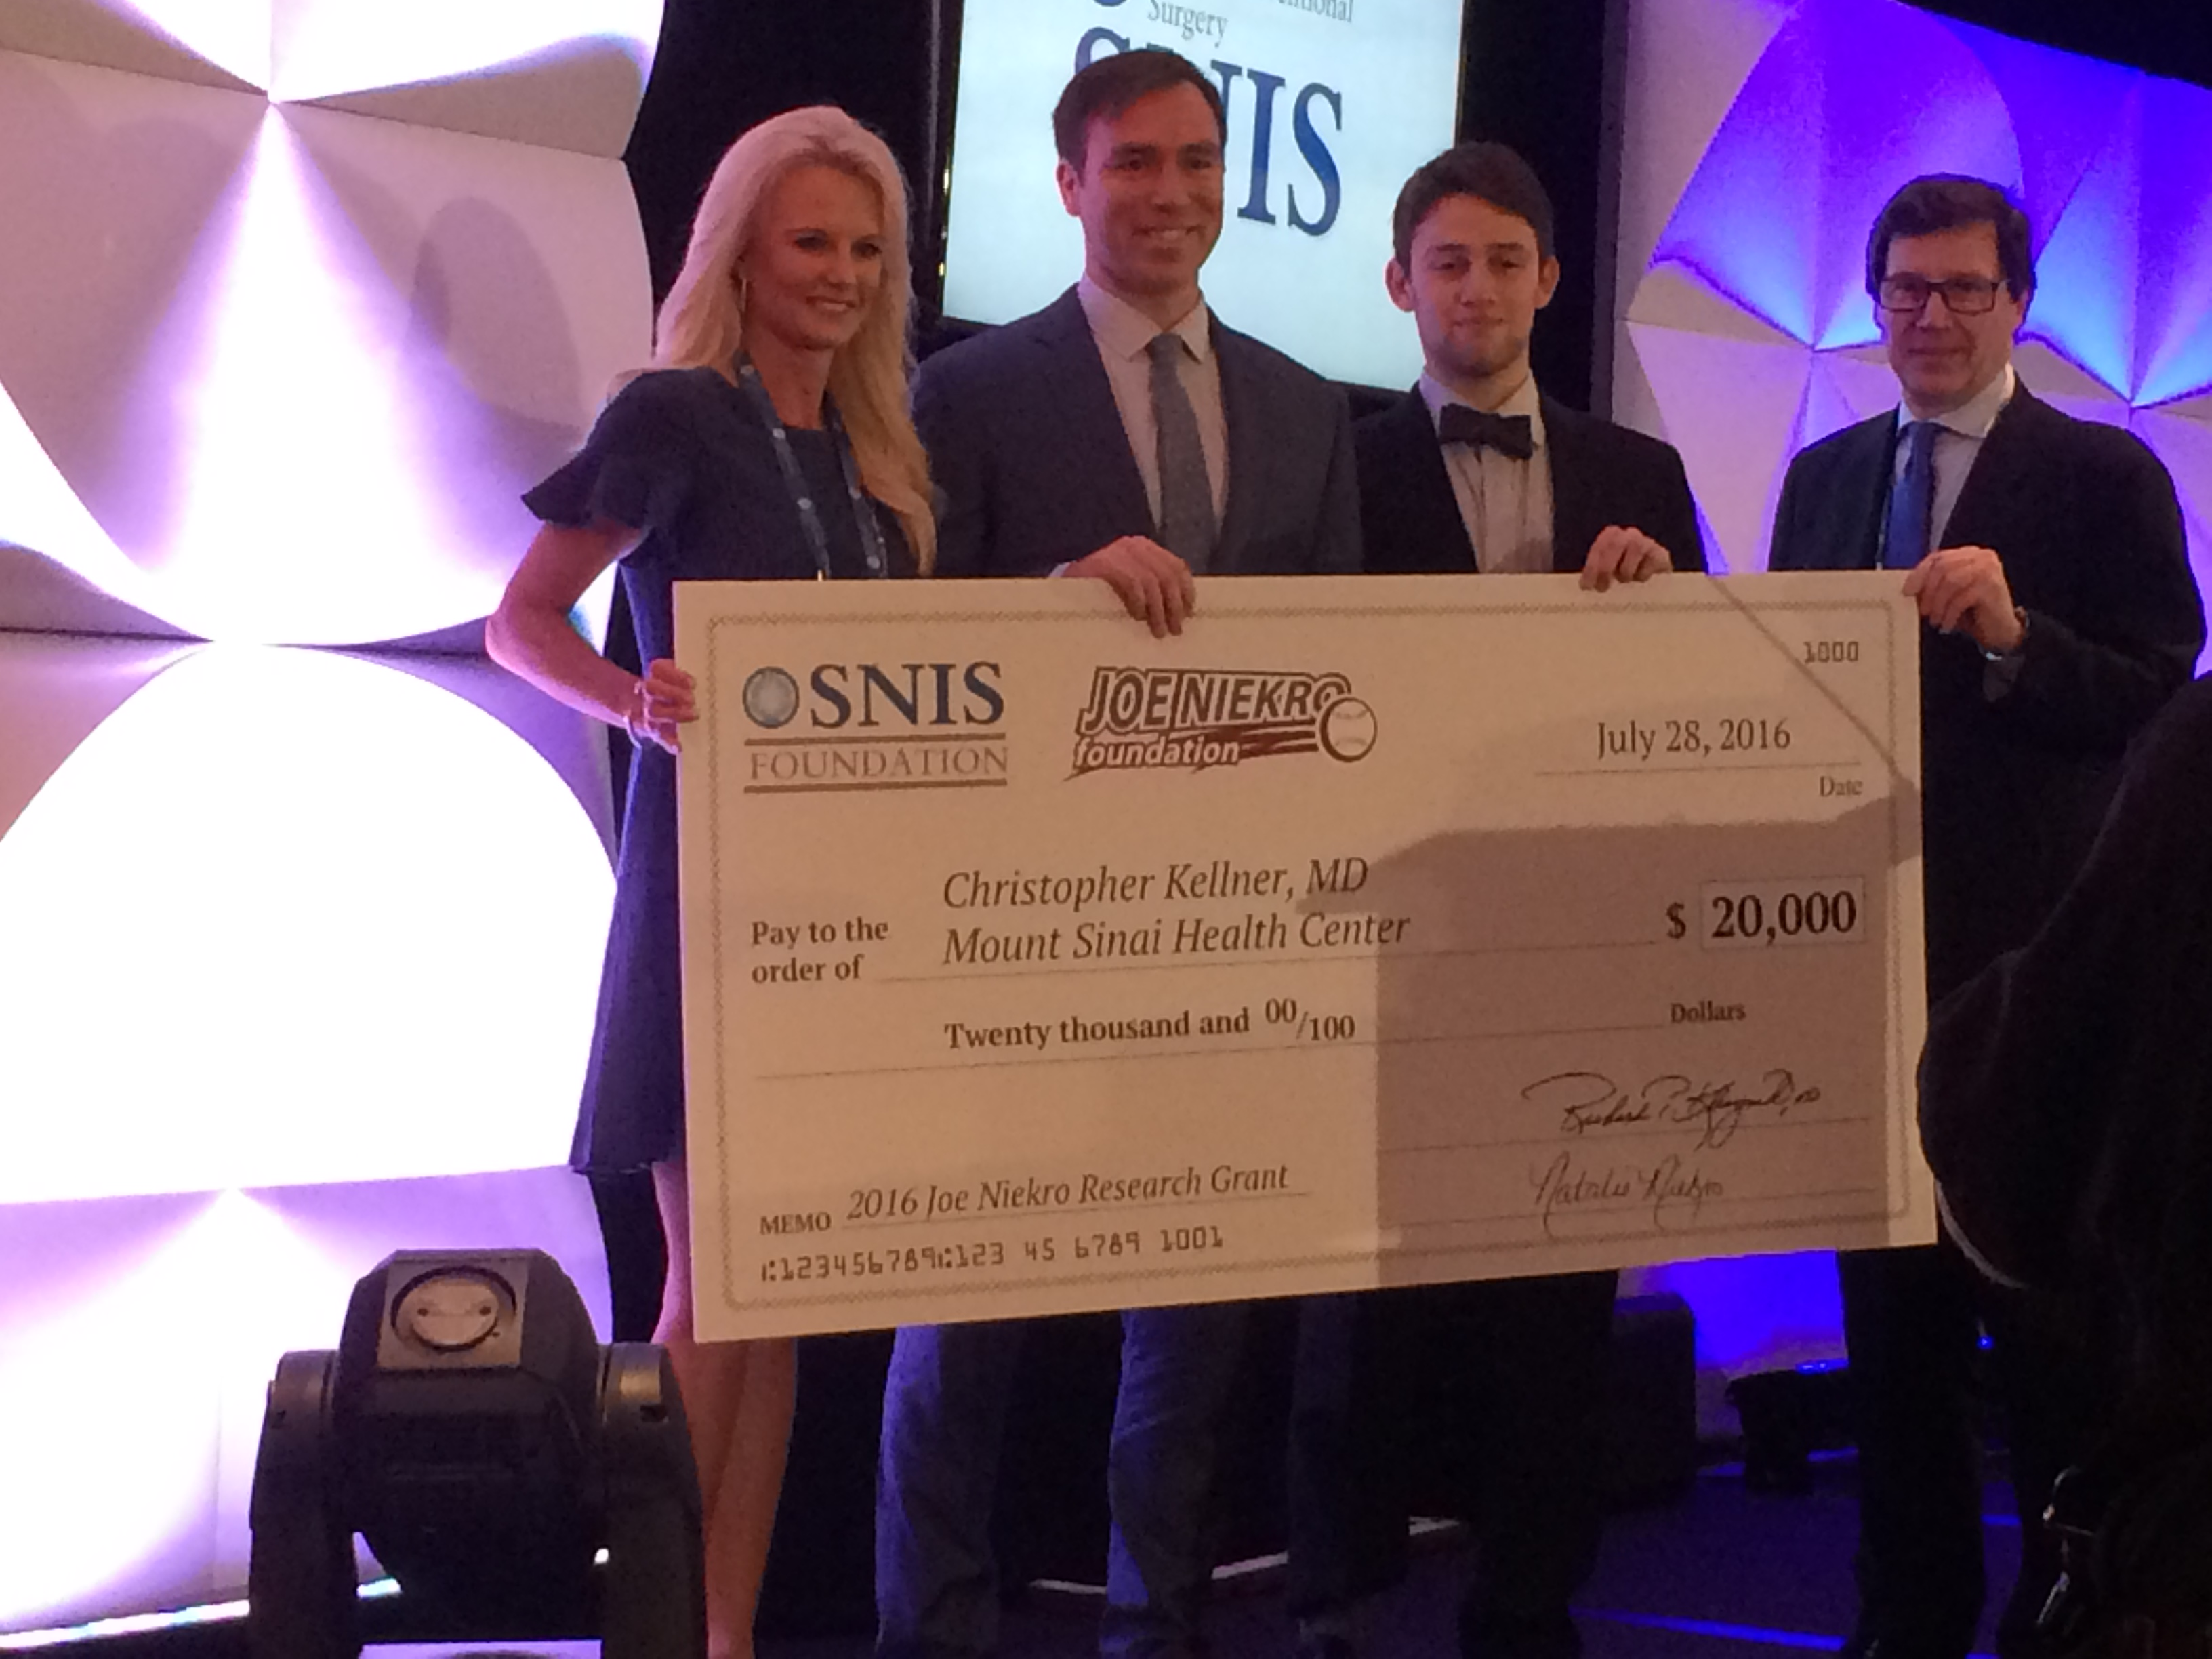 http://www.joeniekrofoundation.com/aneurysms/jnf-awards-three-seed-grants-at-2016-snis-annual-meeting/attachment/img_1050/